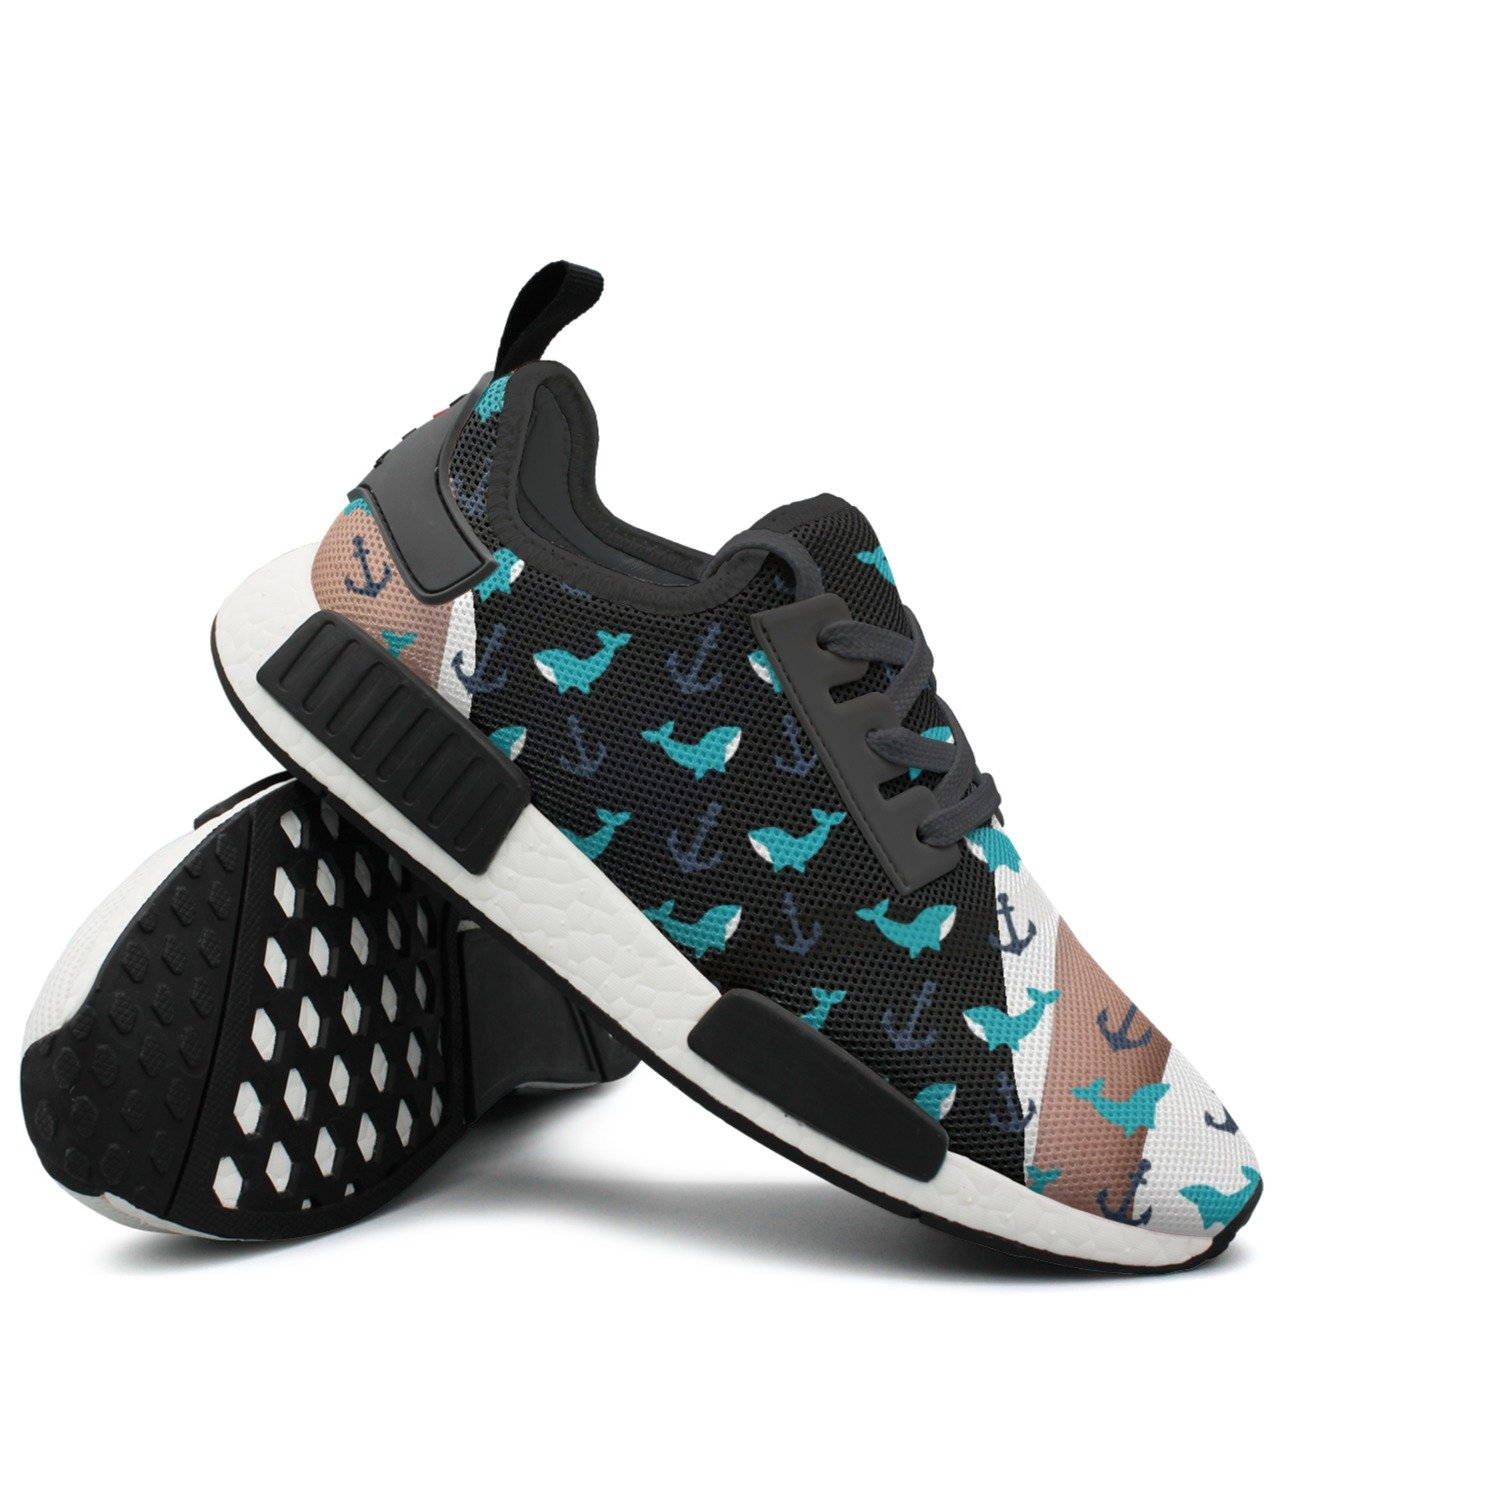 Anchor Whale Lightweight Classic Stylish Print Canvas Sneakers Shoes